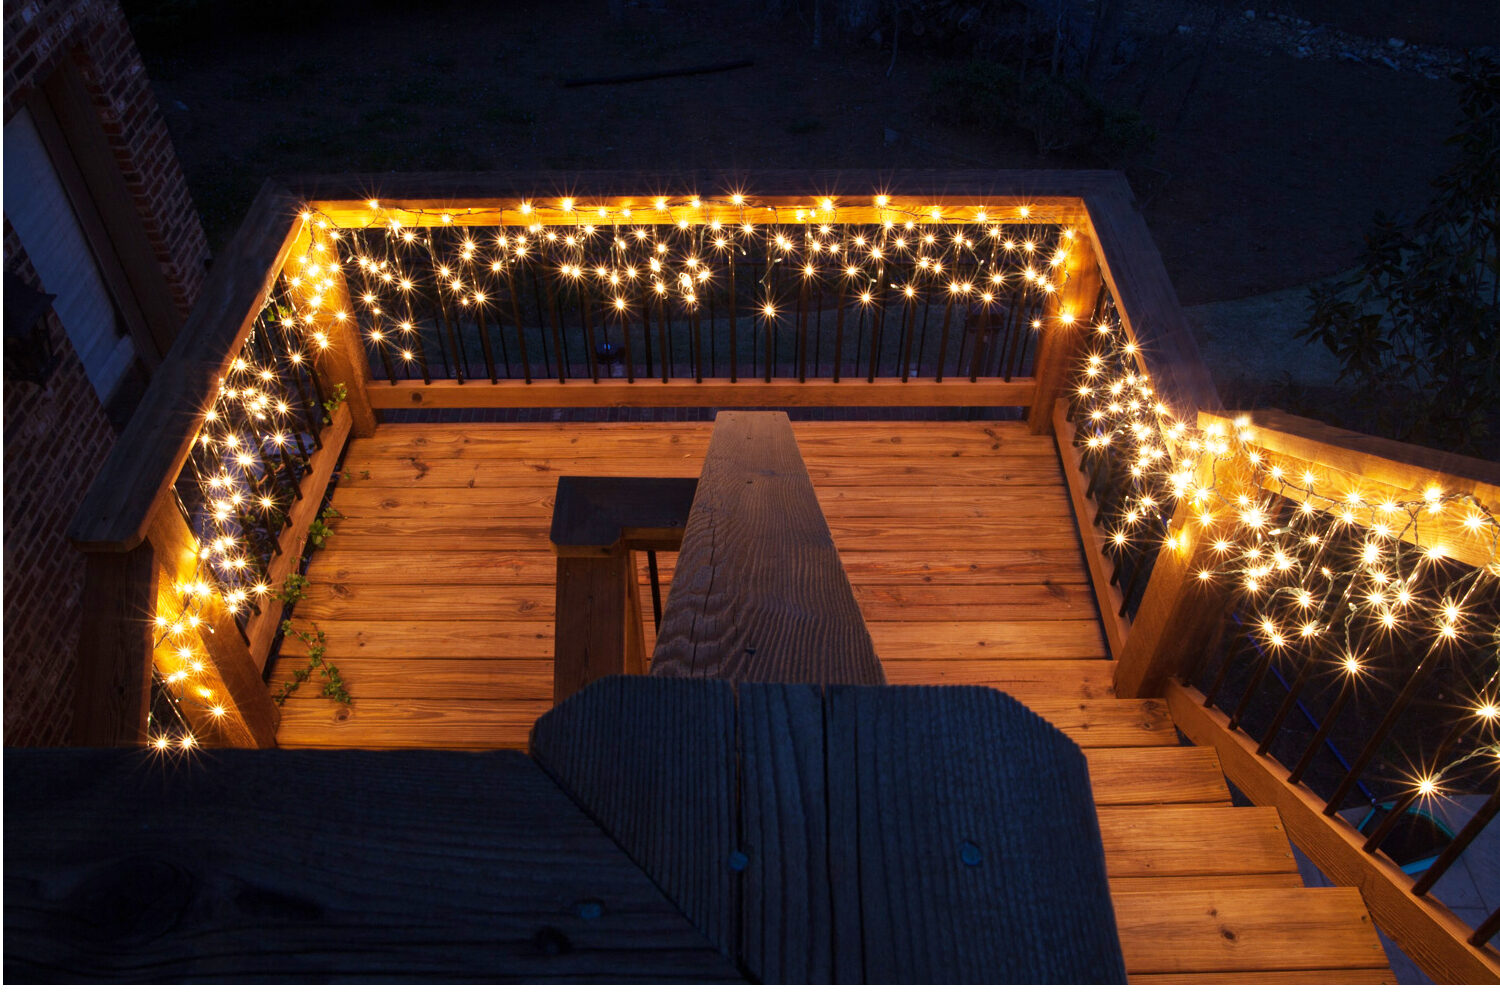 Icicle Lights Create an Inviting Outdoor Staircase & Deck Lighting Ideas with Brilliant Results! - Yard Envy